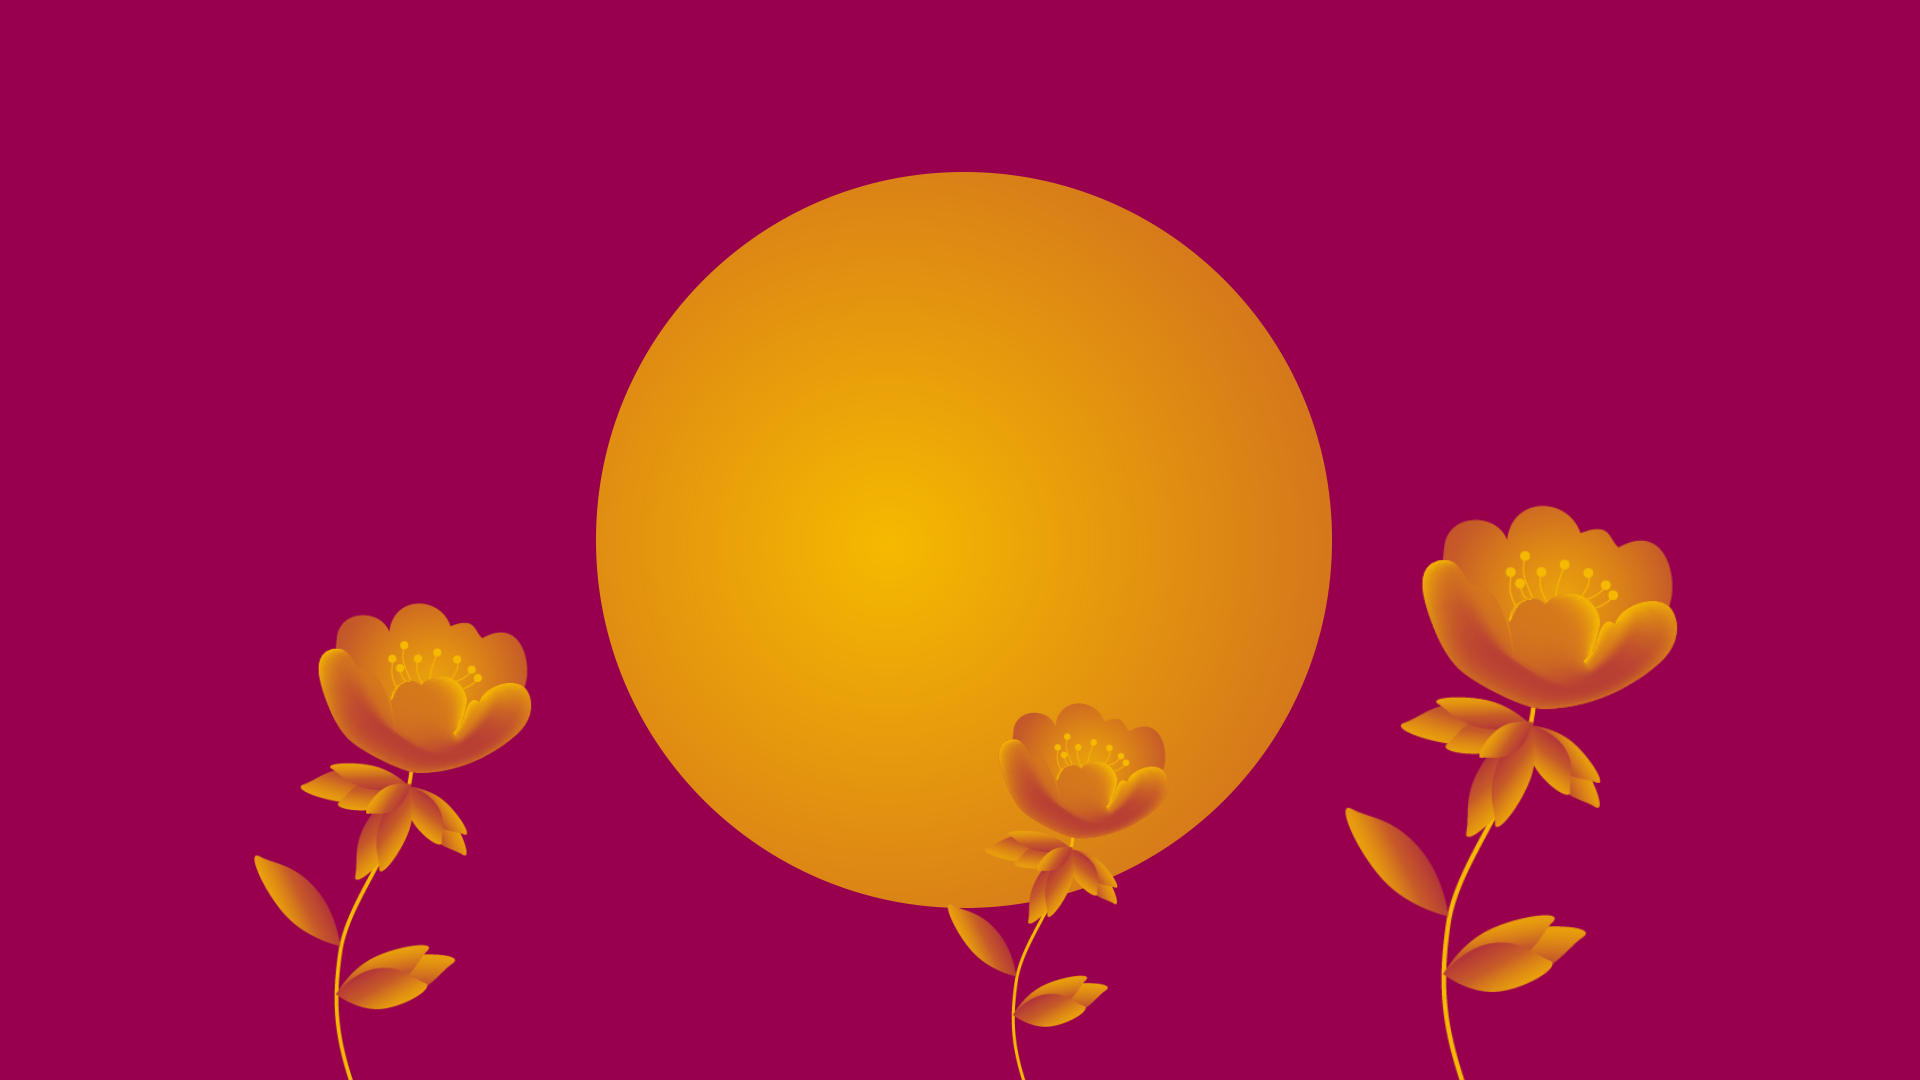 Social advertising, inner circle of digital marketing, yellow circle on pink background with sprouting yellow flowers.